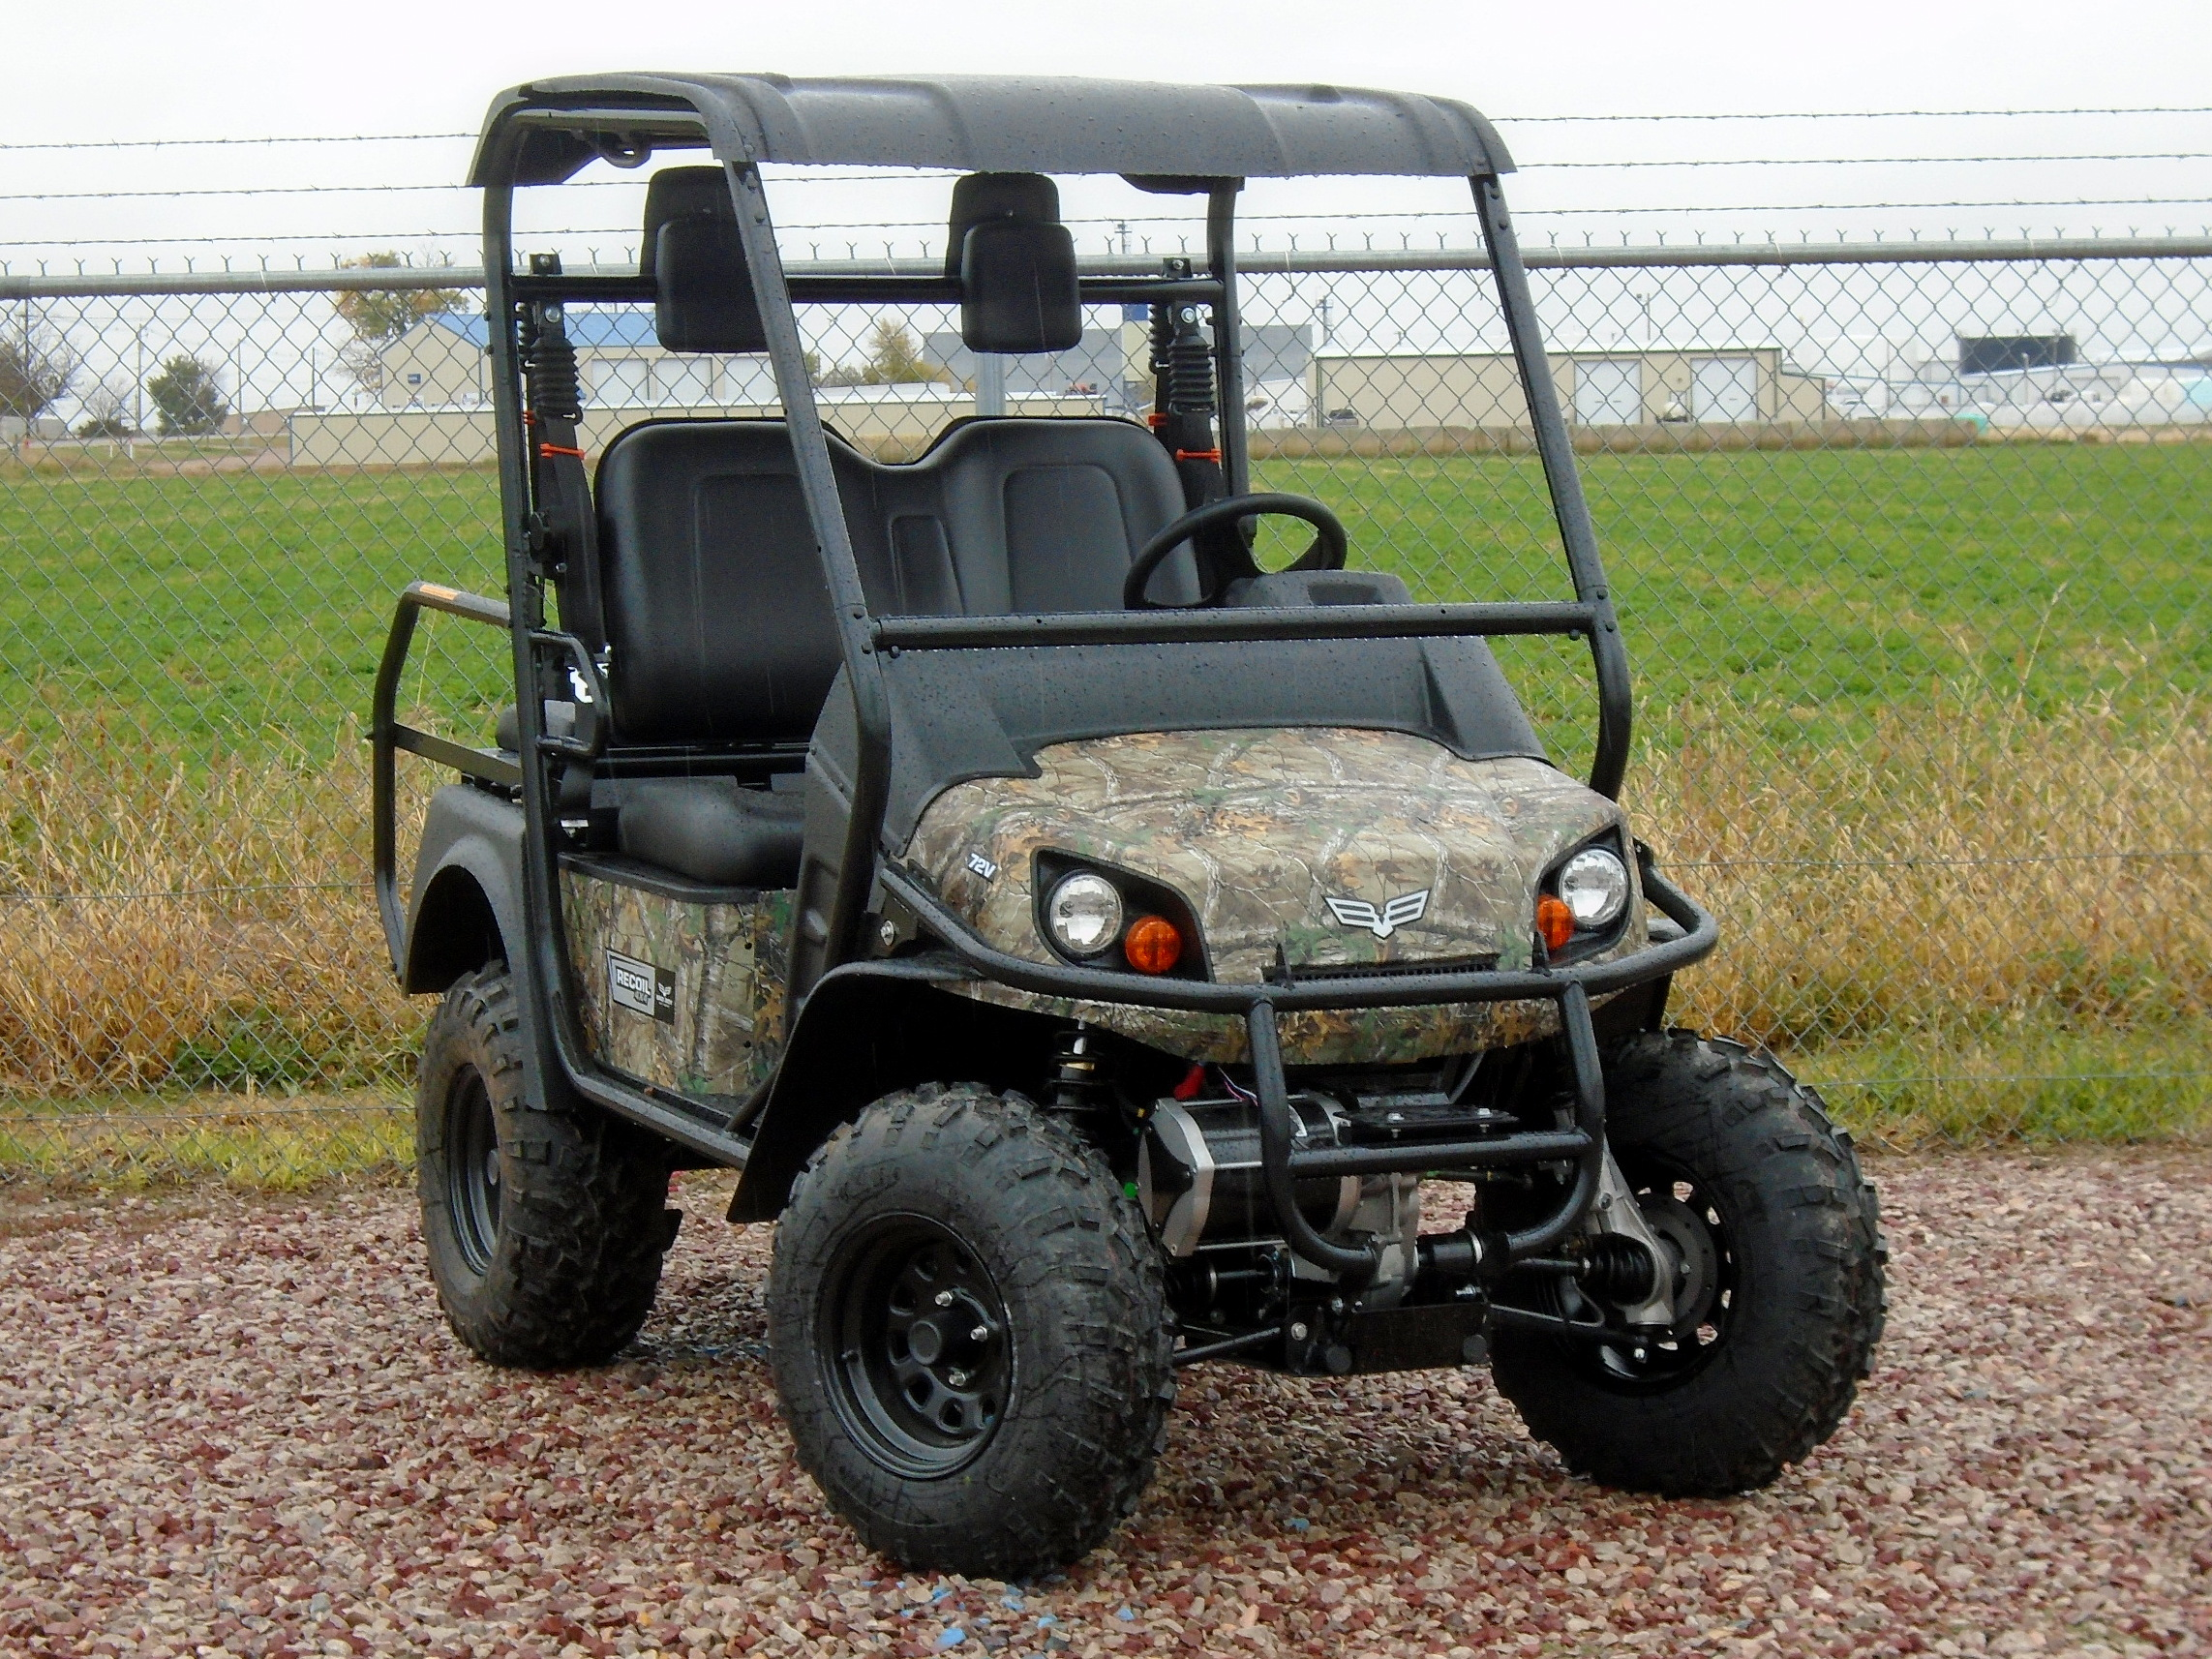 Bad Boy Buggy Wiring Diagram For 4 Wheel Drive Bad Boy Buggy Ambush Wiring-Diagram  Bad Boy Buggies Recoil 2017 Wiring Diagram